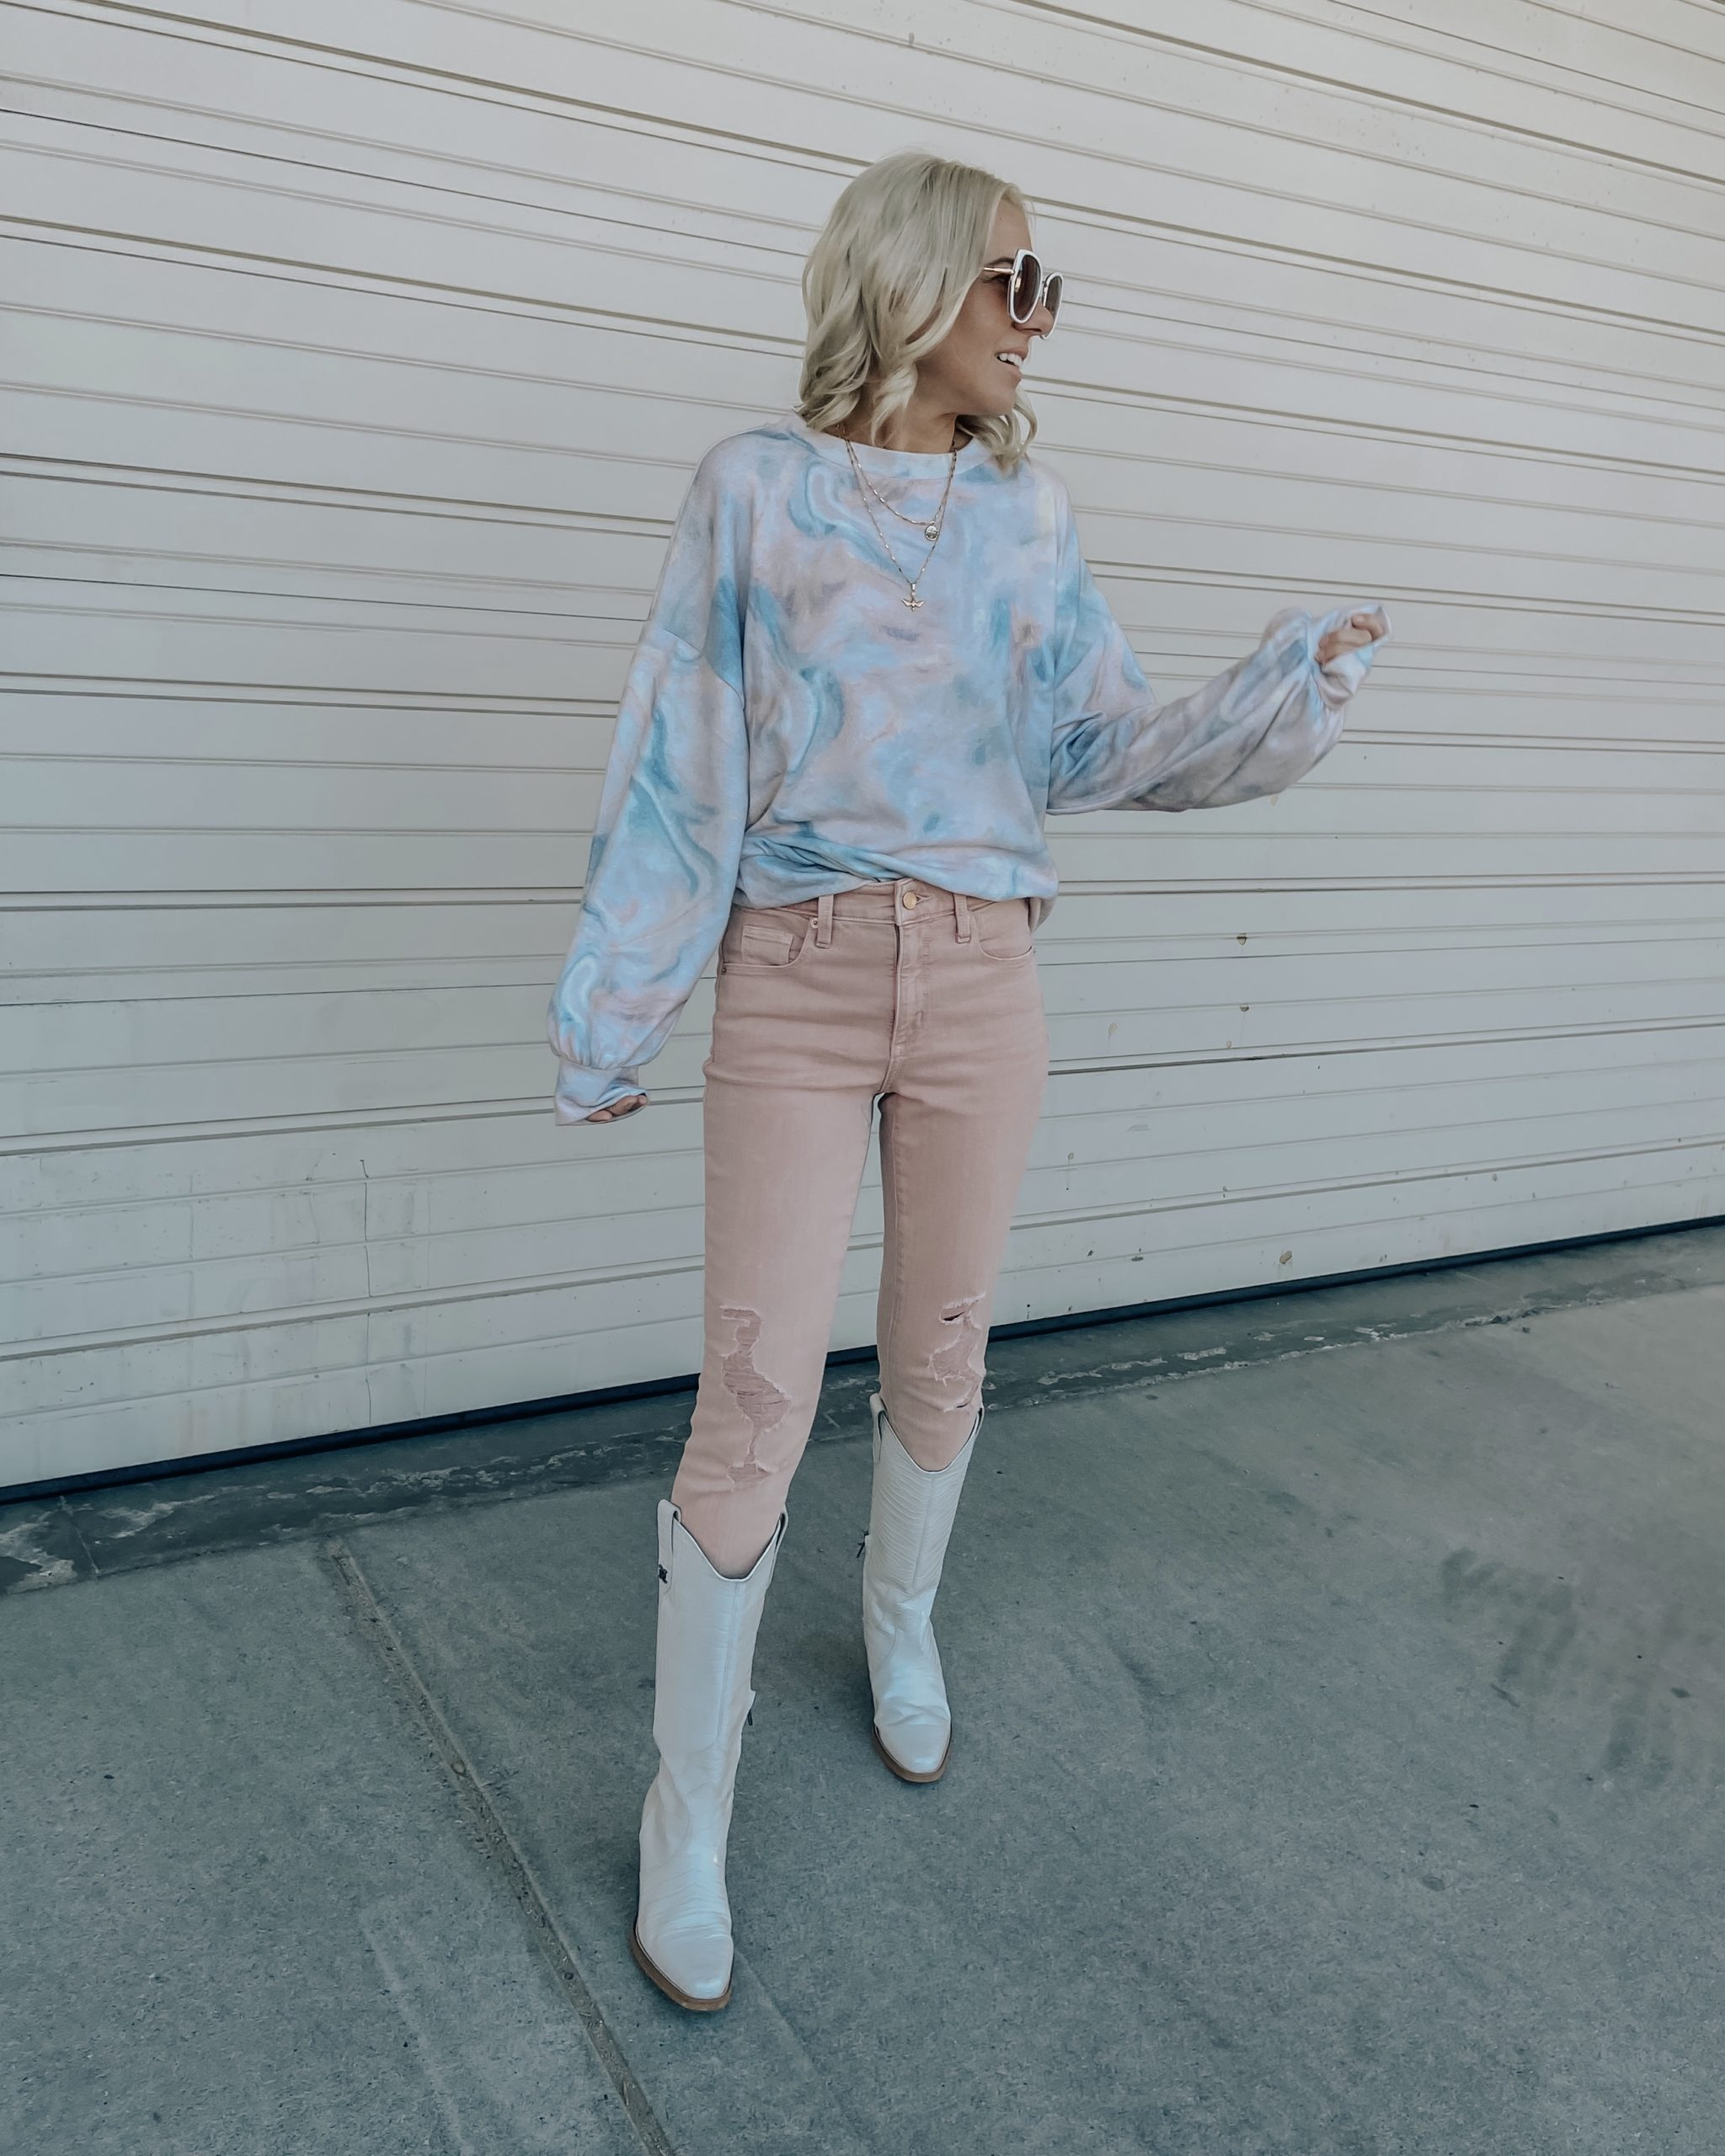 SPRING TREND ALERT: PASTELS- Jaclyn De Leon Style + the new color palette for spring is pastels and I couldn't be more excited about it. These pastel pink jeans are a new favorite and perfect for the season.